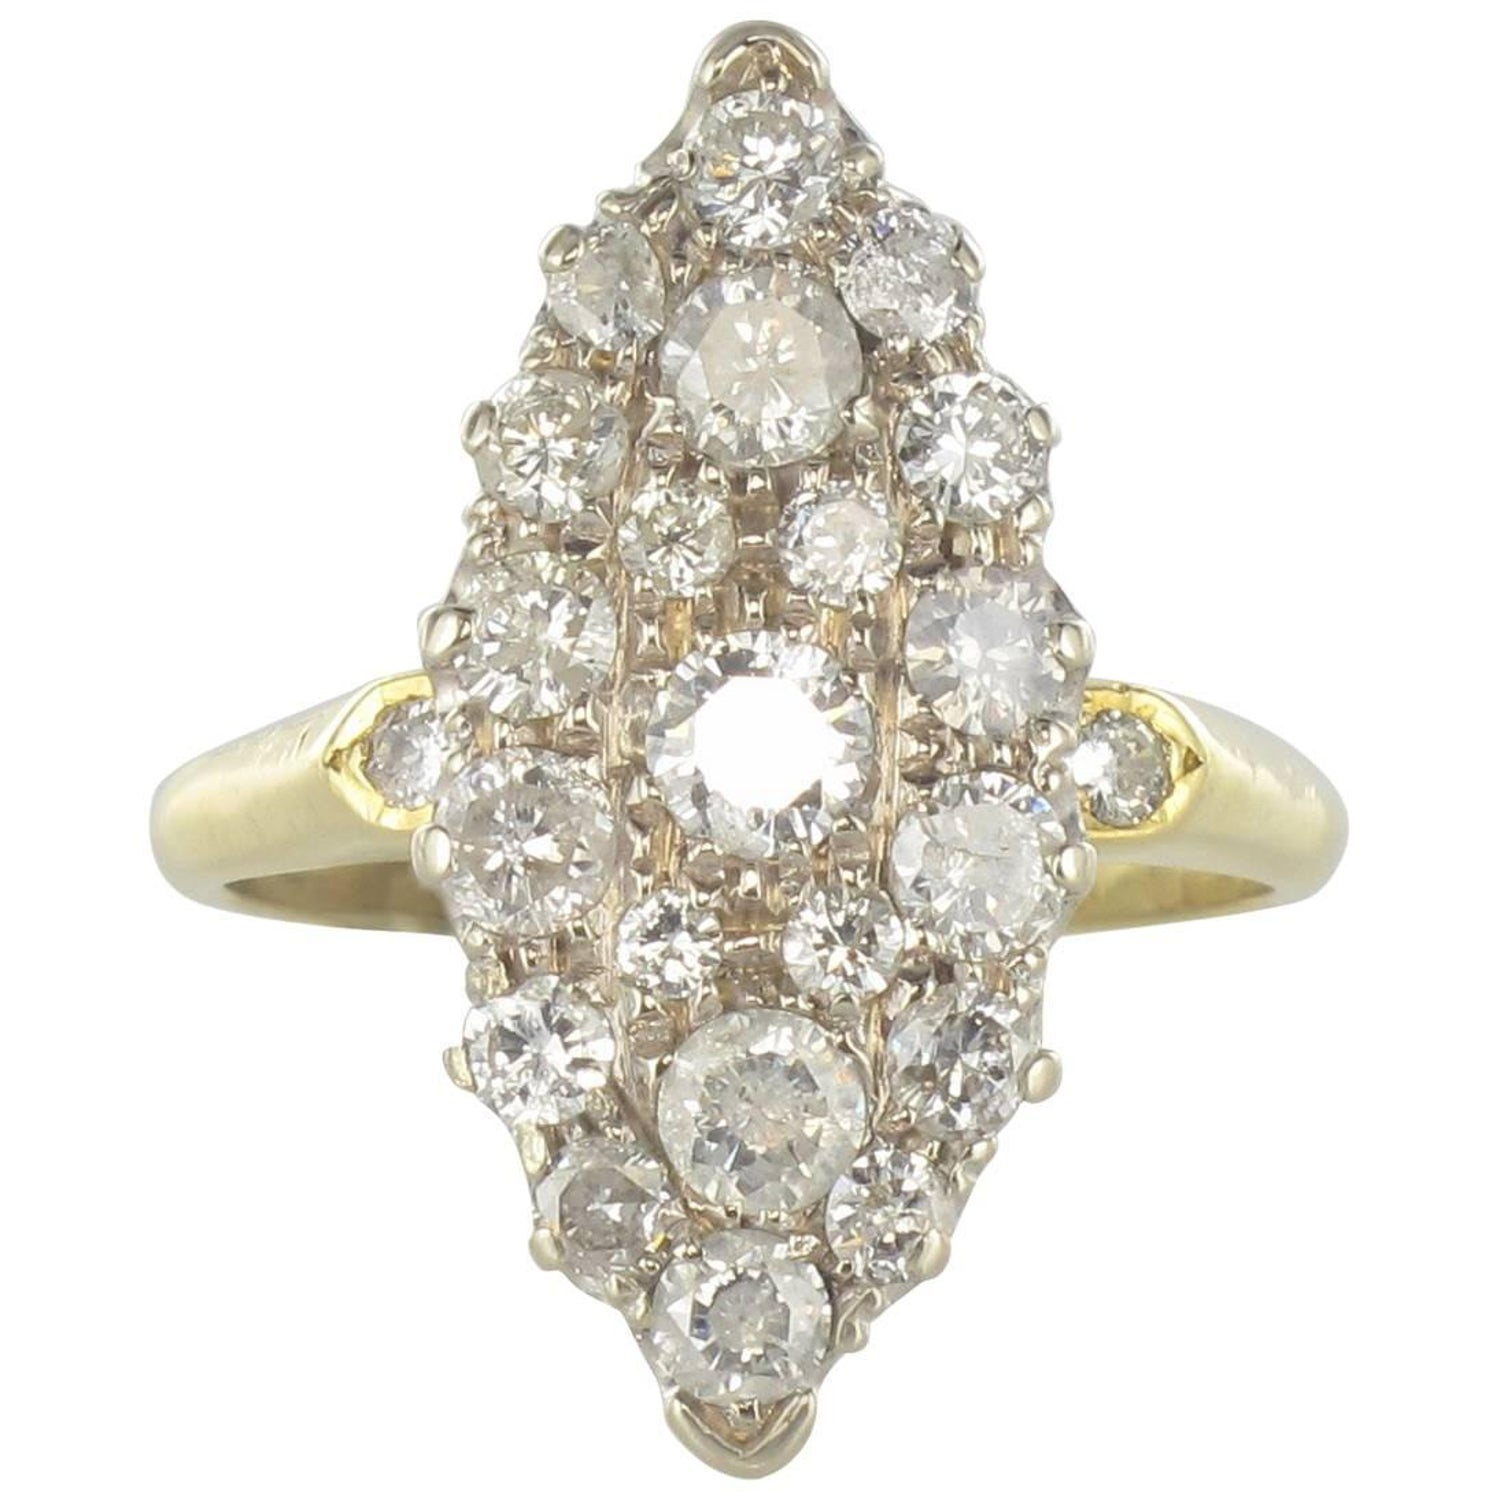 1960s Engagement Rings 142 For Sale at 1stdibs